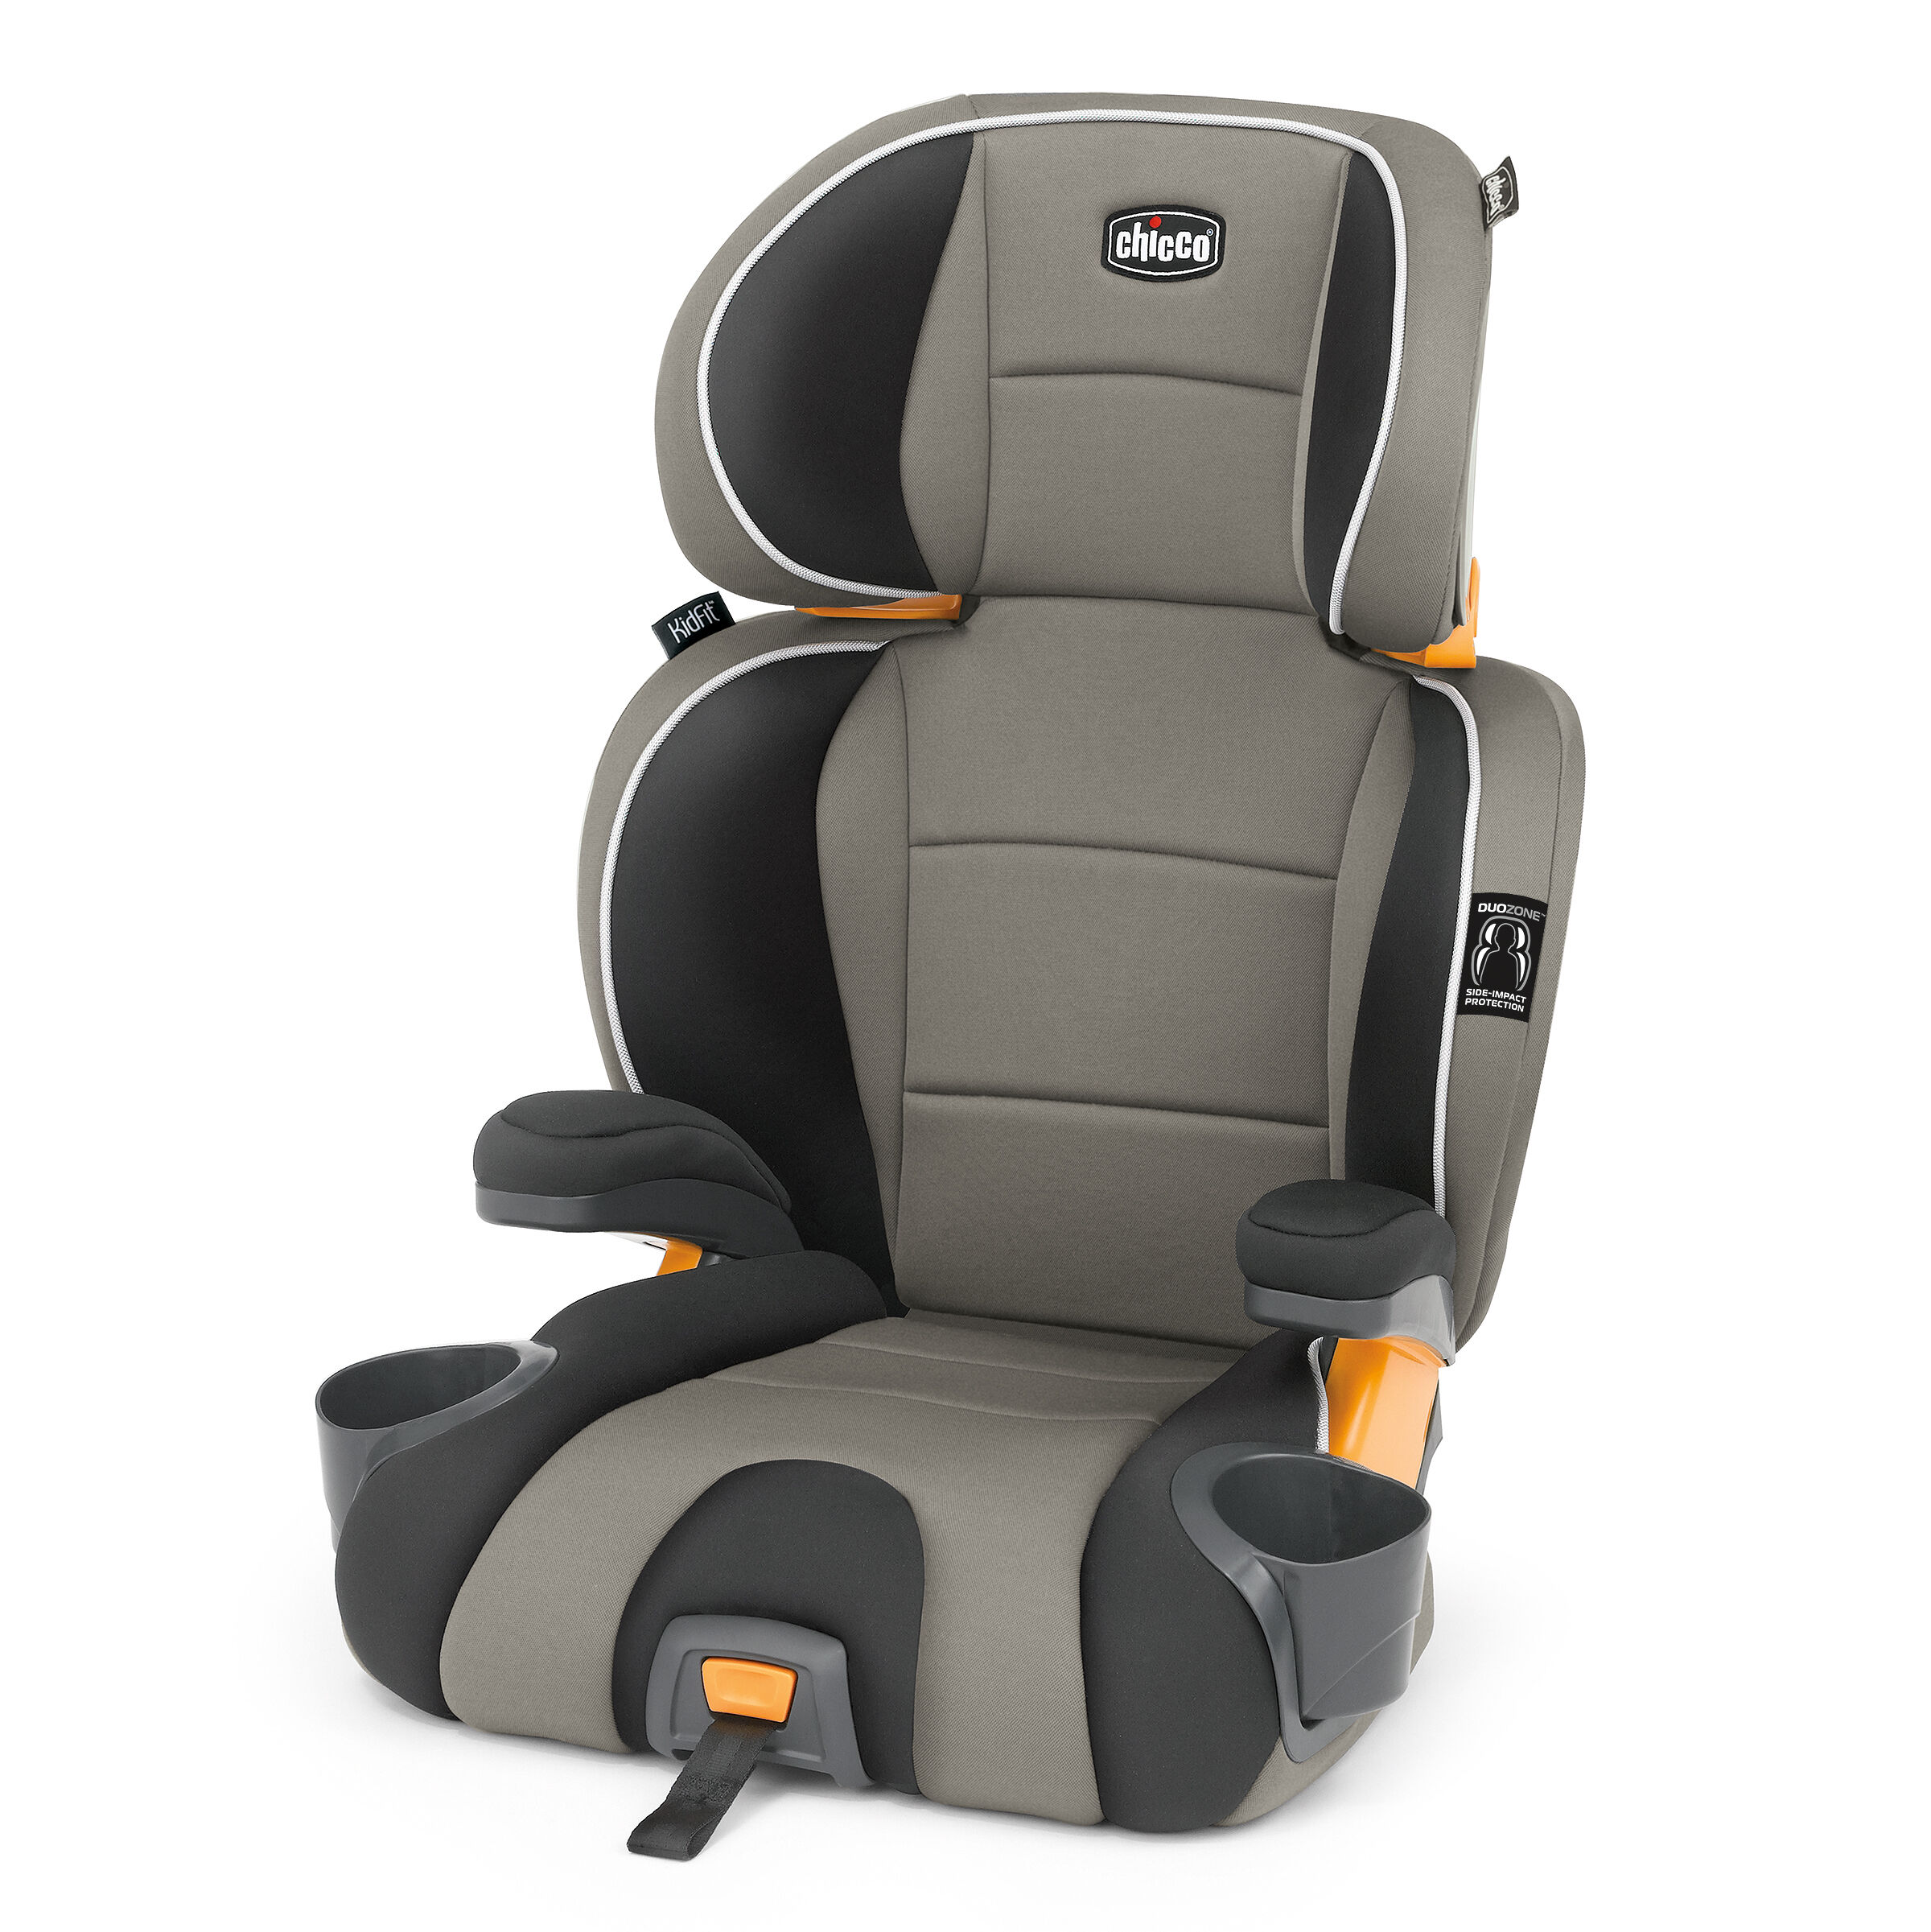 Chicco Kidfit N Belt Positioning Booster Seat Coupe  sc 1 st  p3mil.com & reclining booster seat convaid carrot 3 special needs child ... islam-shia.org